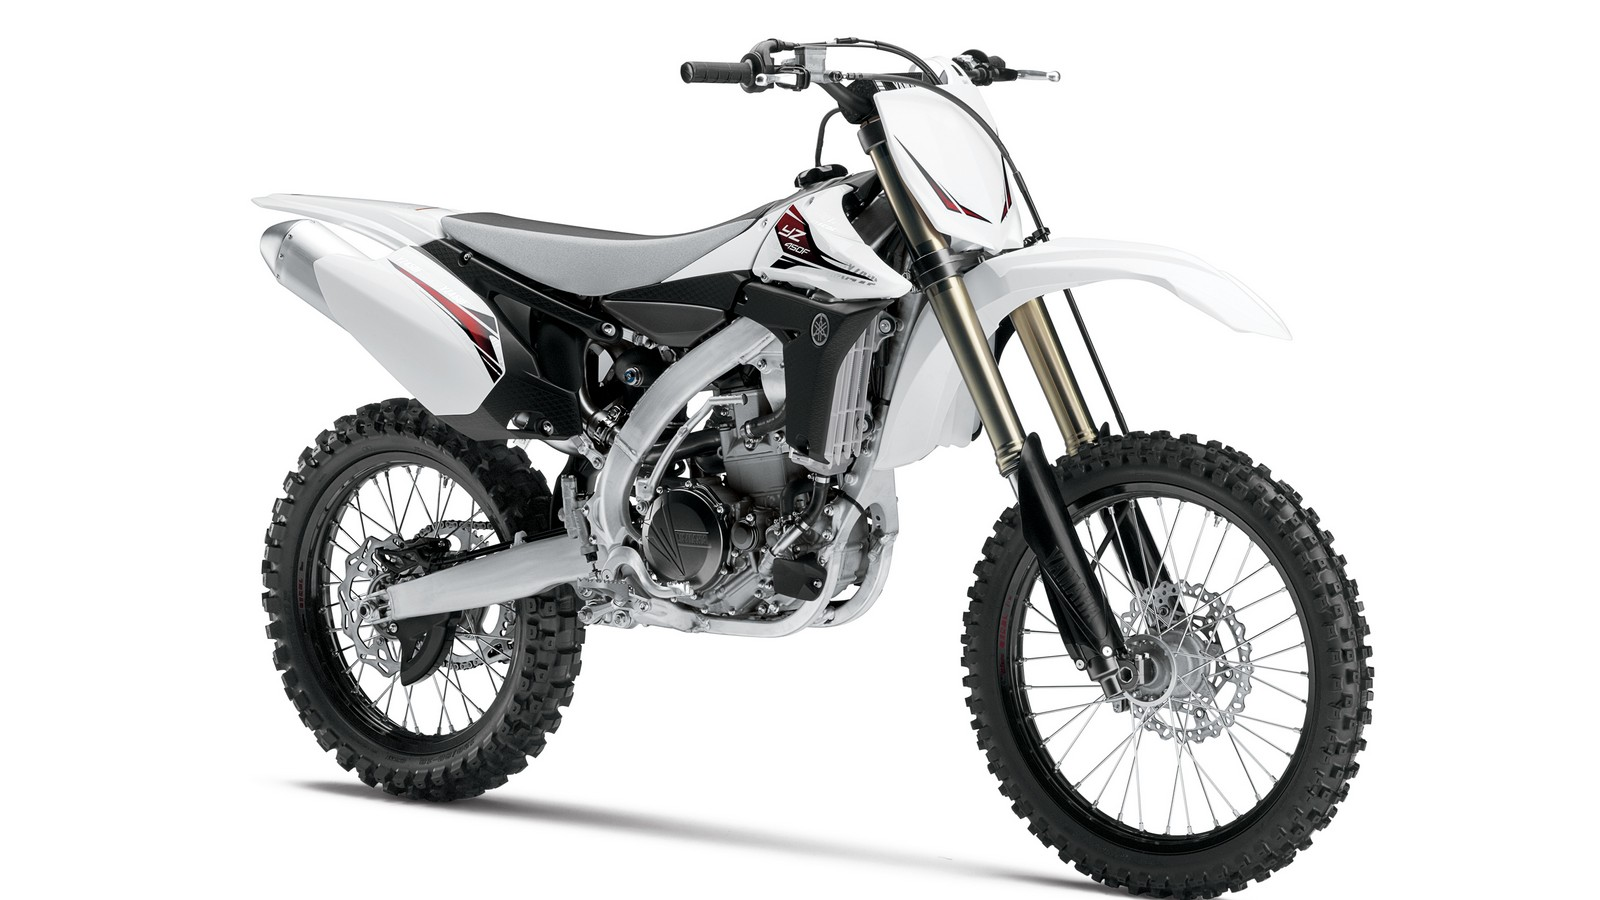 Marvelous Yamaha Yz450F Top Speed Ocoug Best Dining Table And Chair Ideas Images Ocougorg